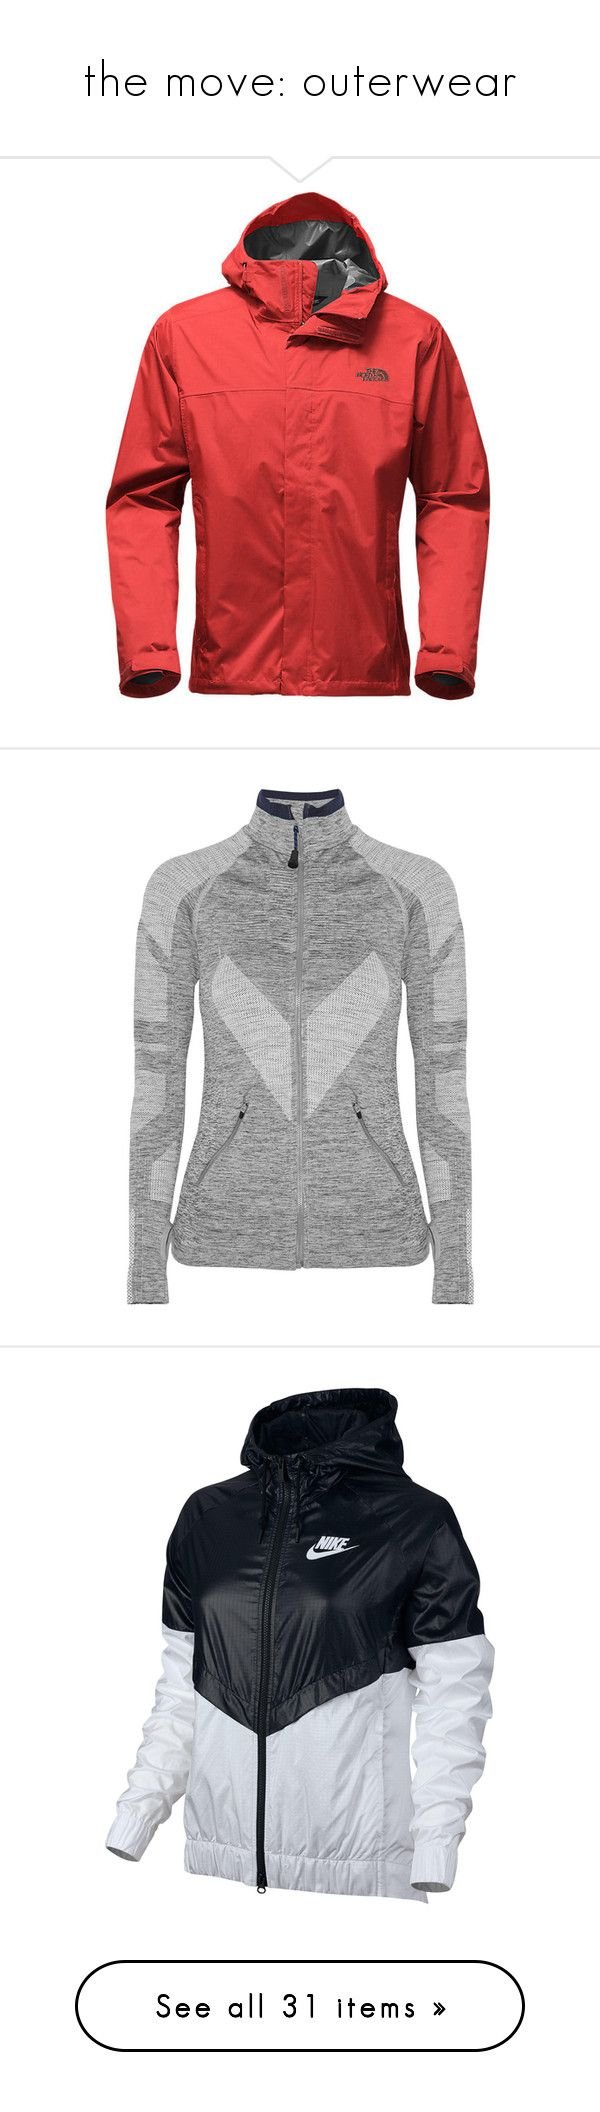 """""""the move: outerwear"""" by soyyolanda ❤ liked on Polyvore featuring men's fashion, men's clothing, men's outerwear, men's jackets, mens jackets, mens waterproof jacket, mens lightweight jacket, the north face mens jackets, men's lightweight rain jacket and grey"""